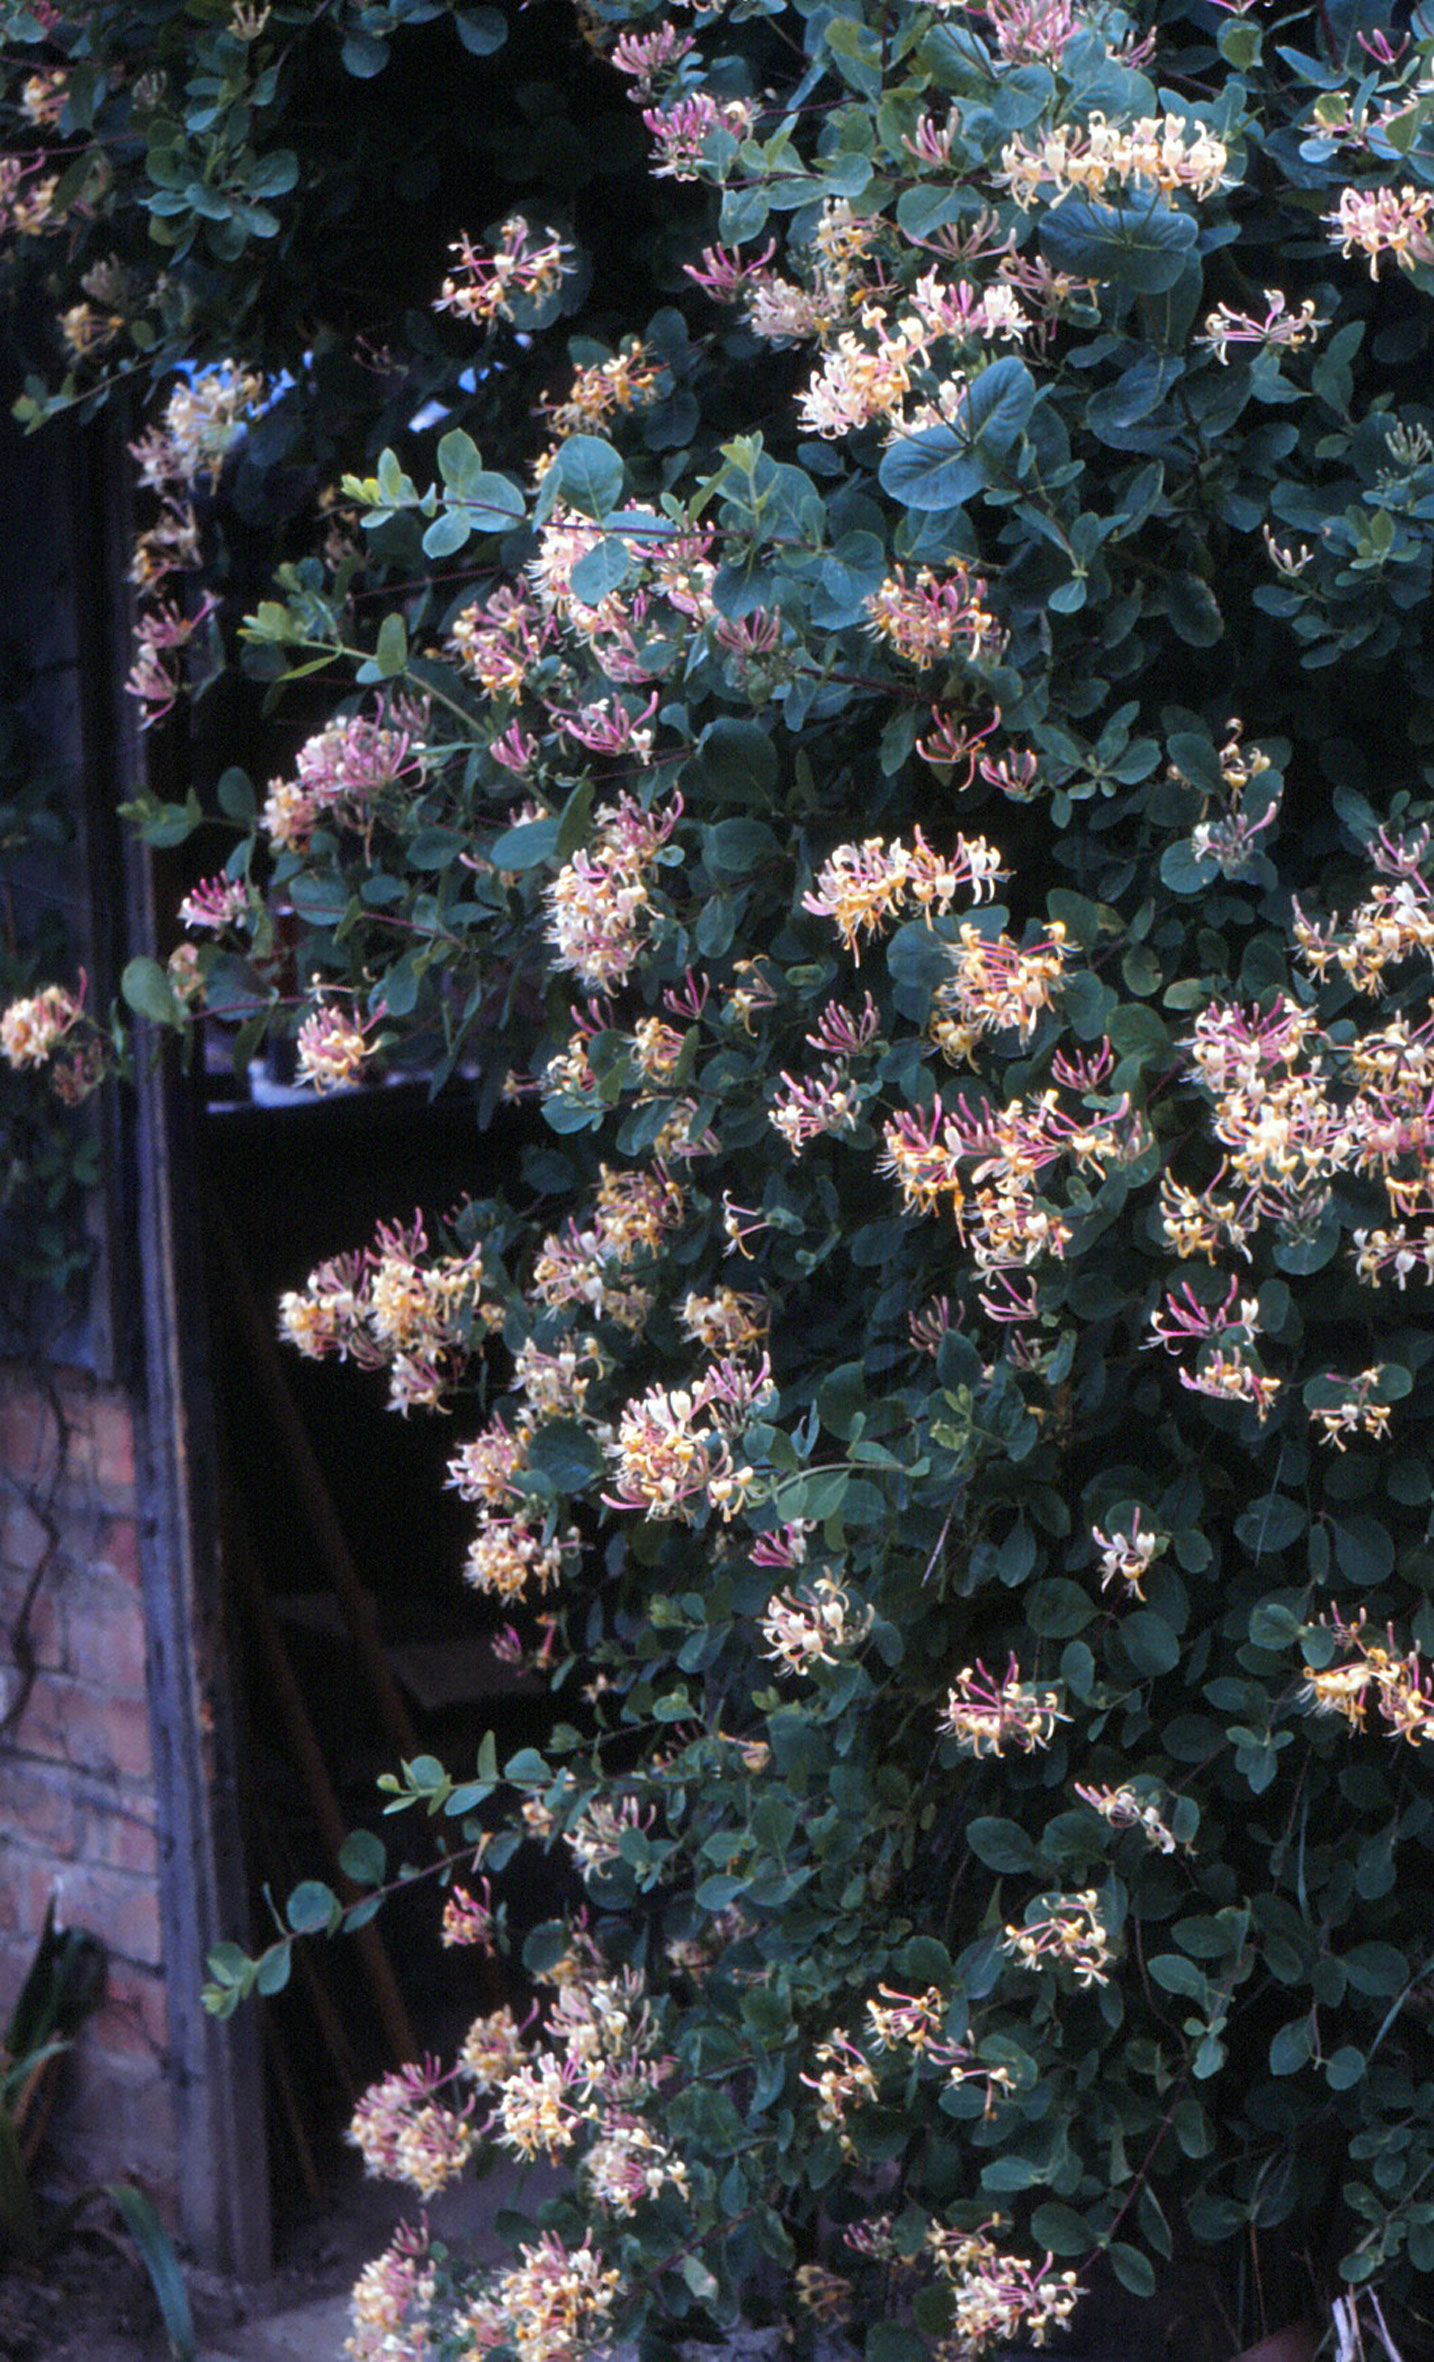 Lonicera-italica-on-potting-shed